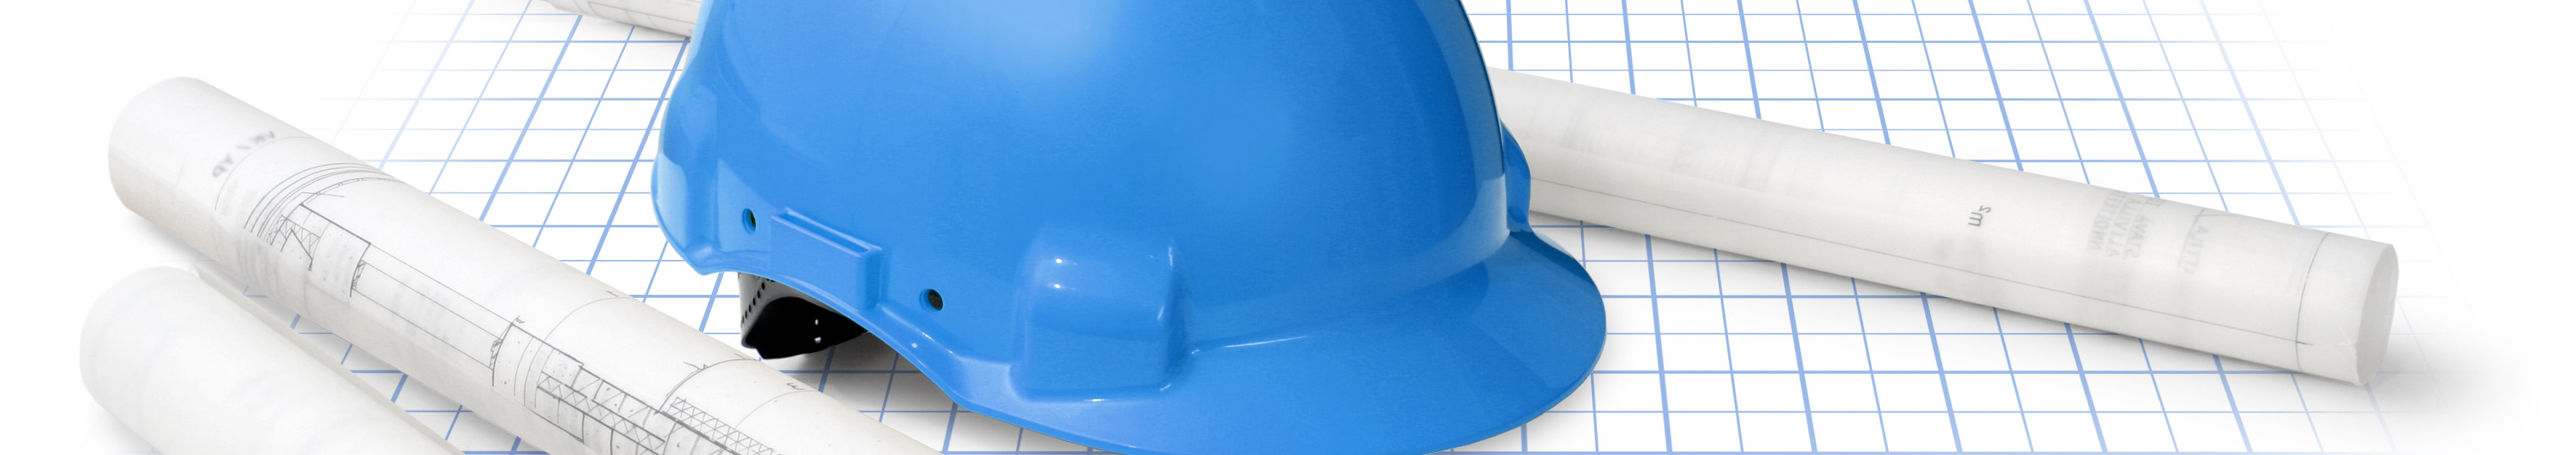 Image of a blue construction hat on floor plans